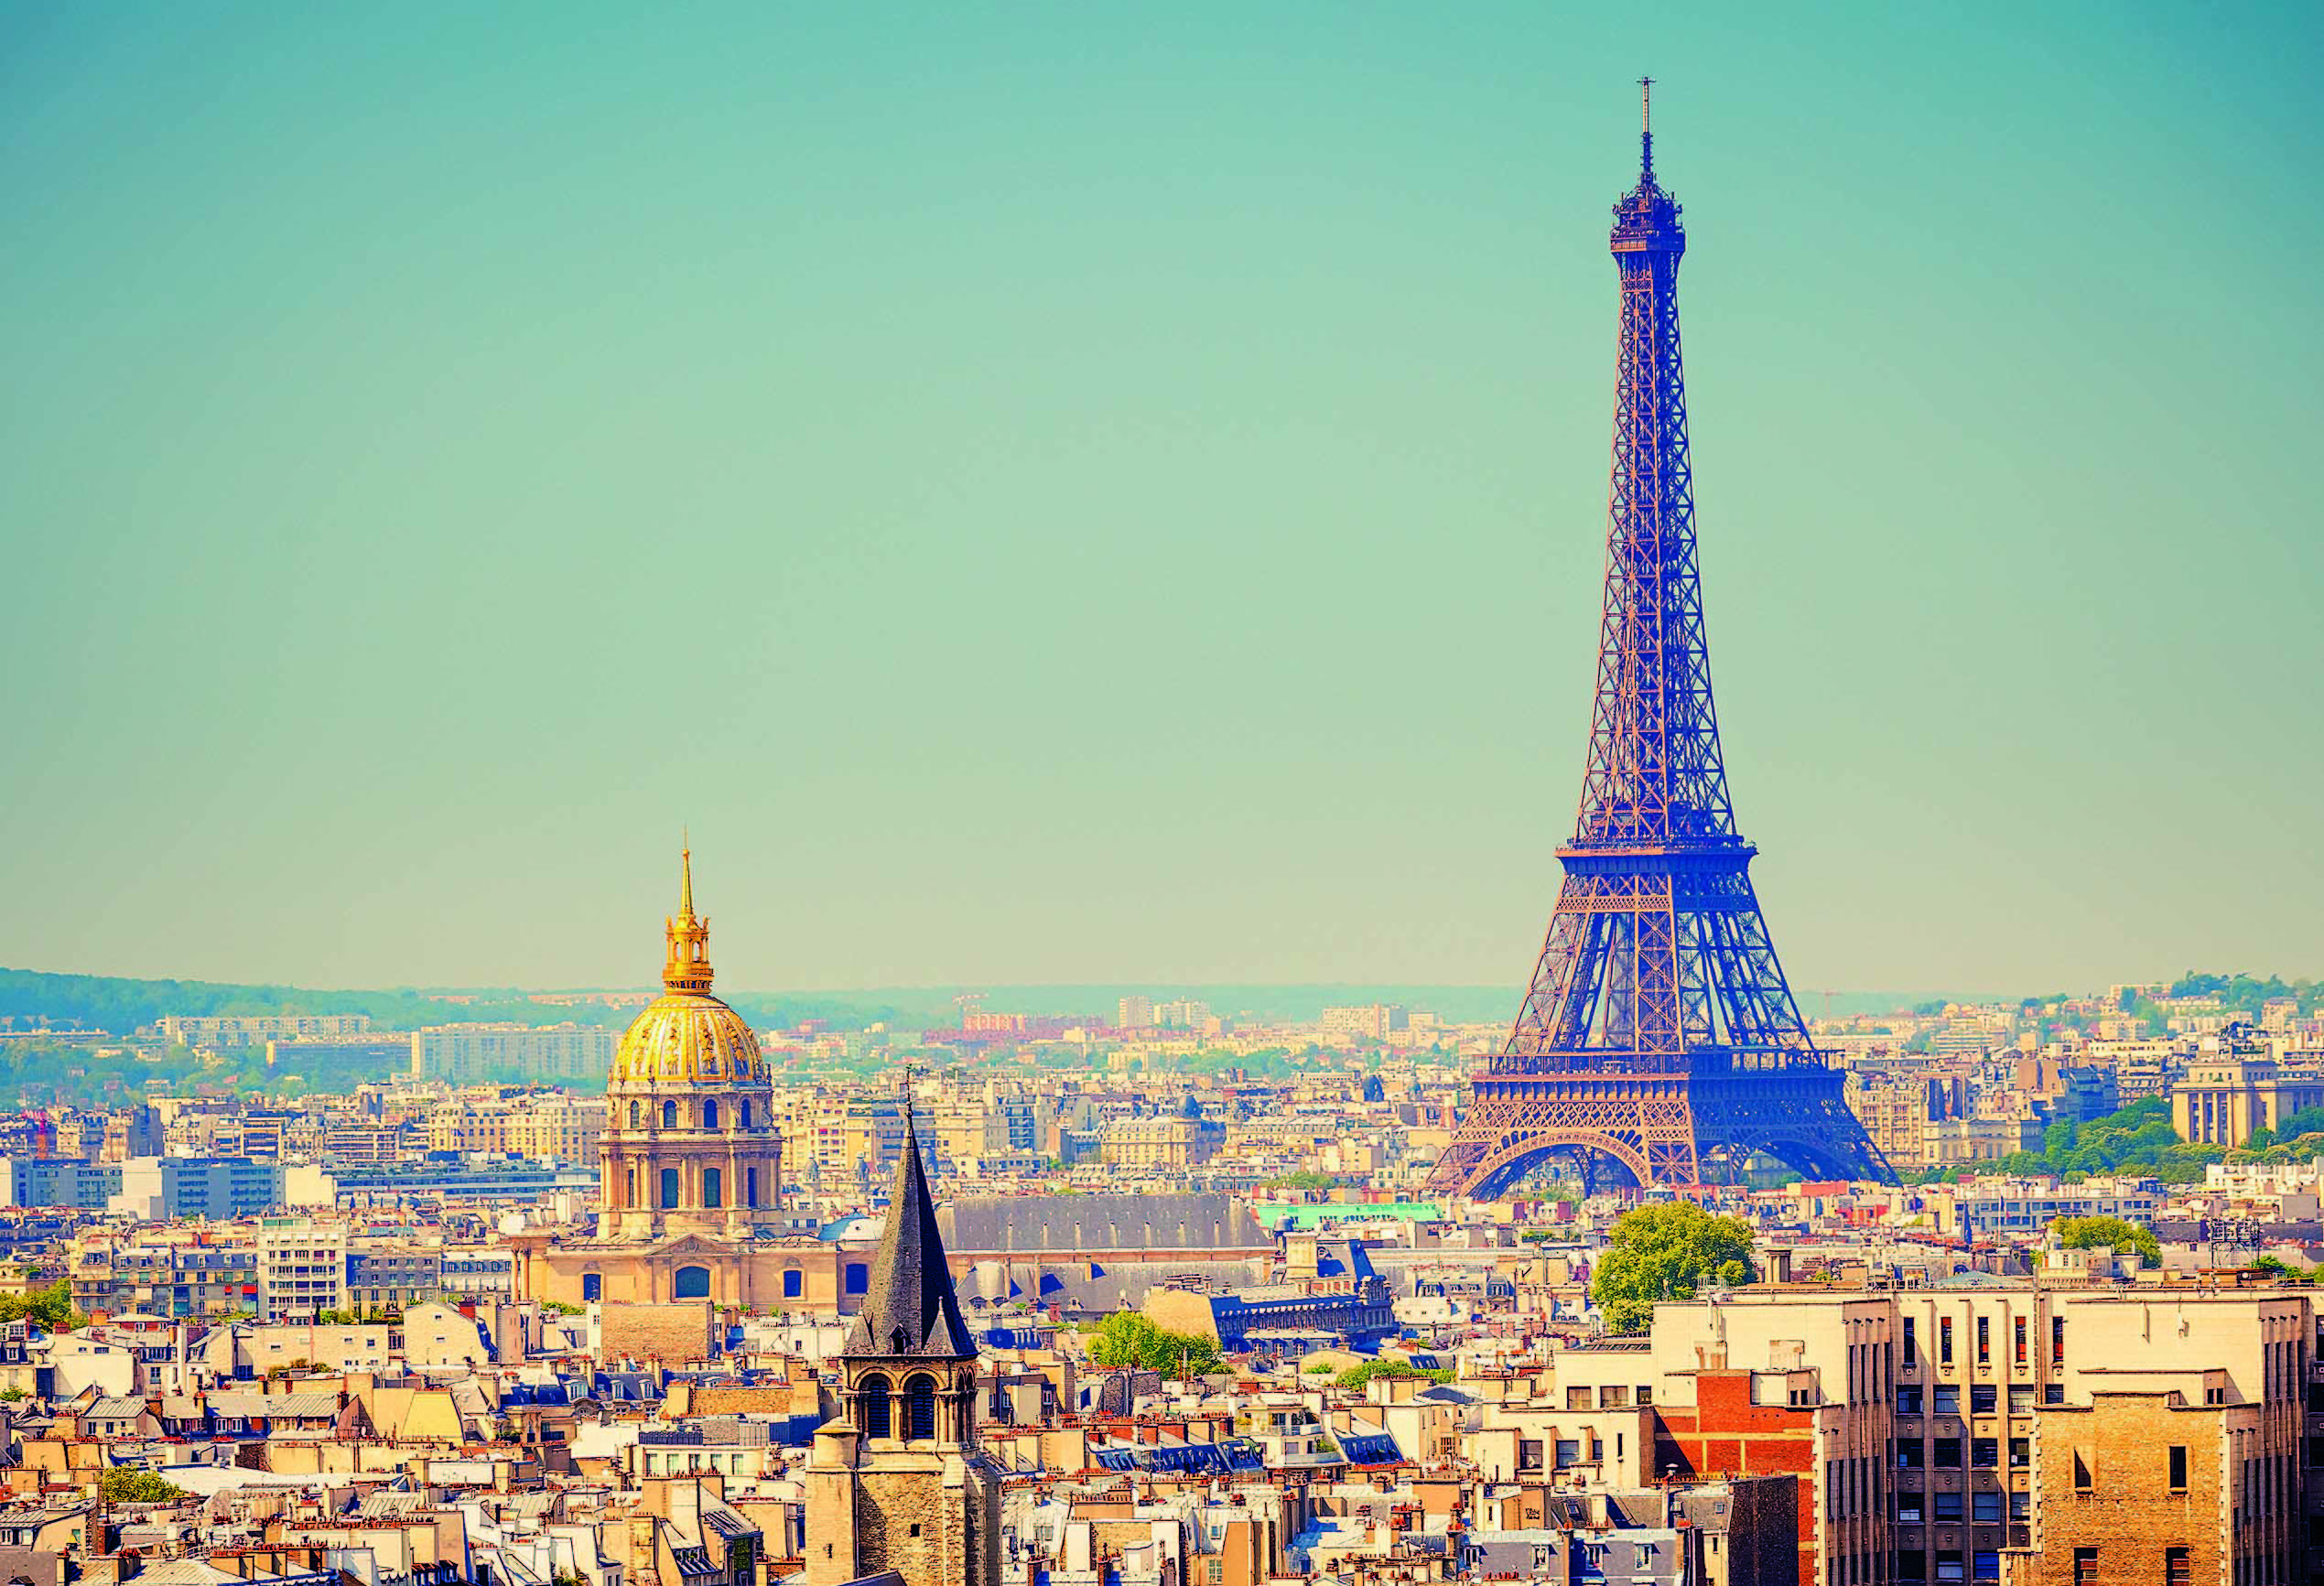 Eiffel Tower | Department of French and Italian | Vanderbilt University